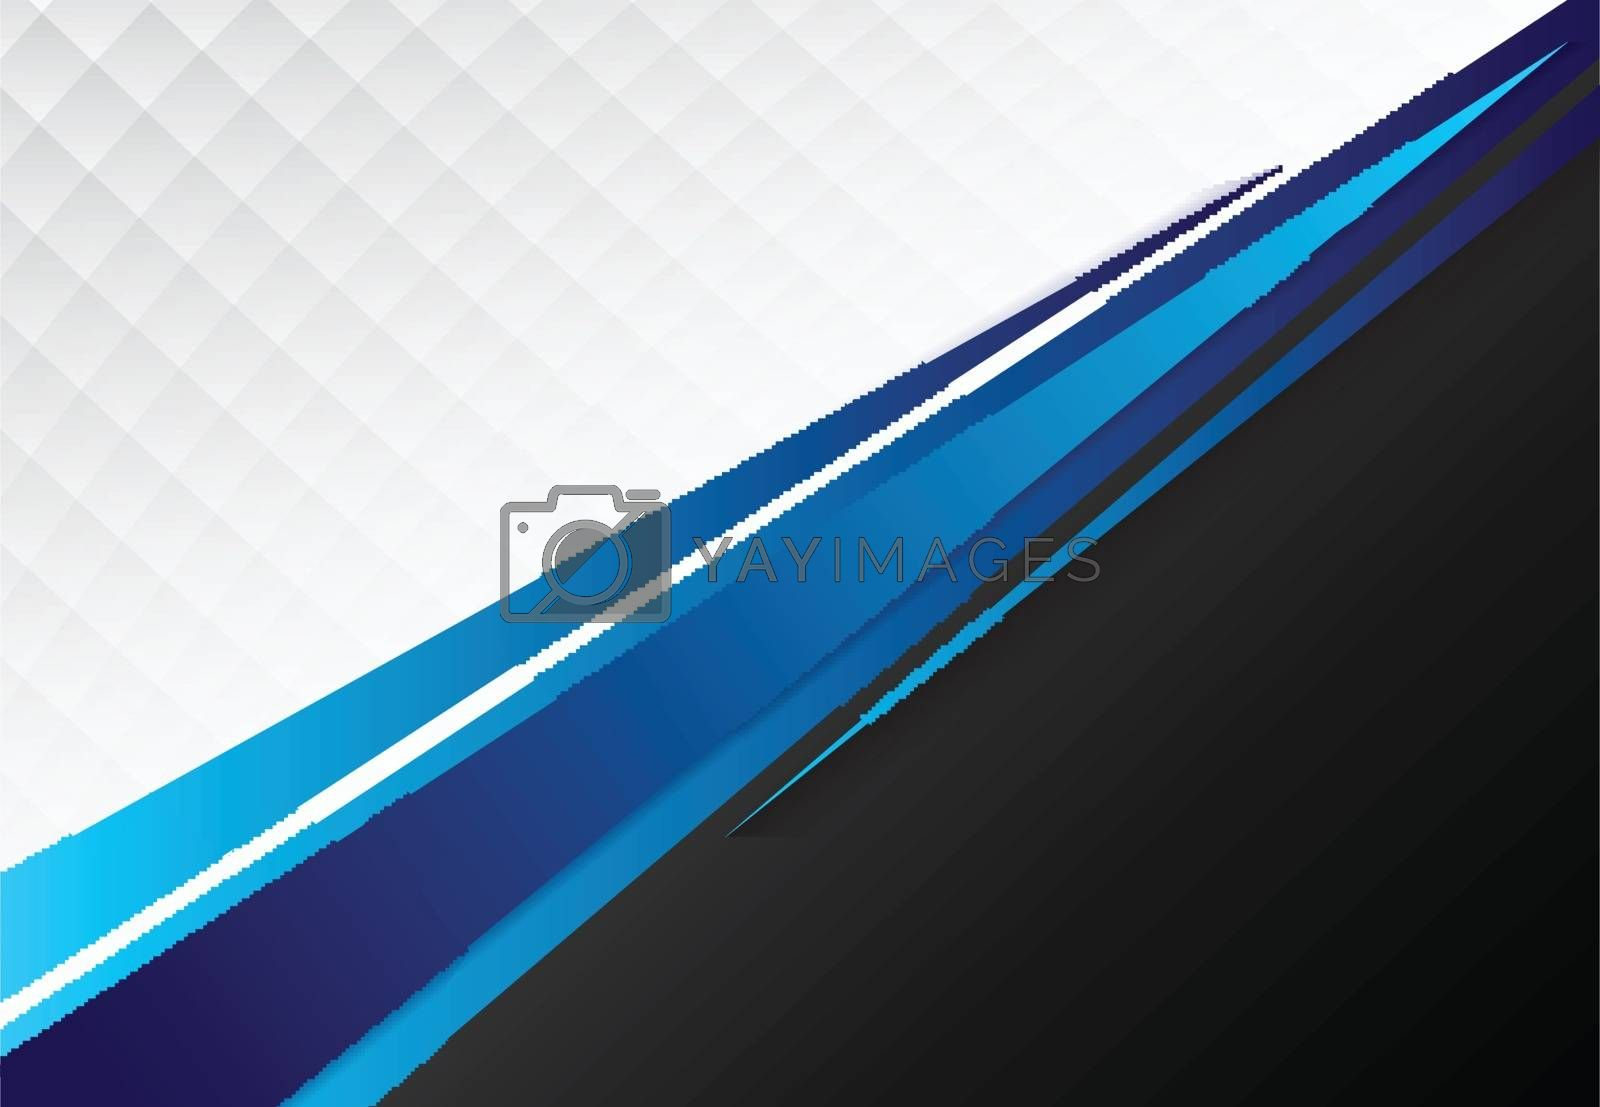 template corporate concept blue black grey and white contrast background. Vector graphic design illustration, copy space